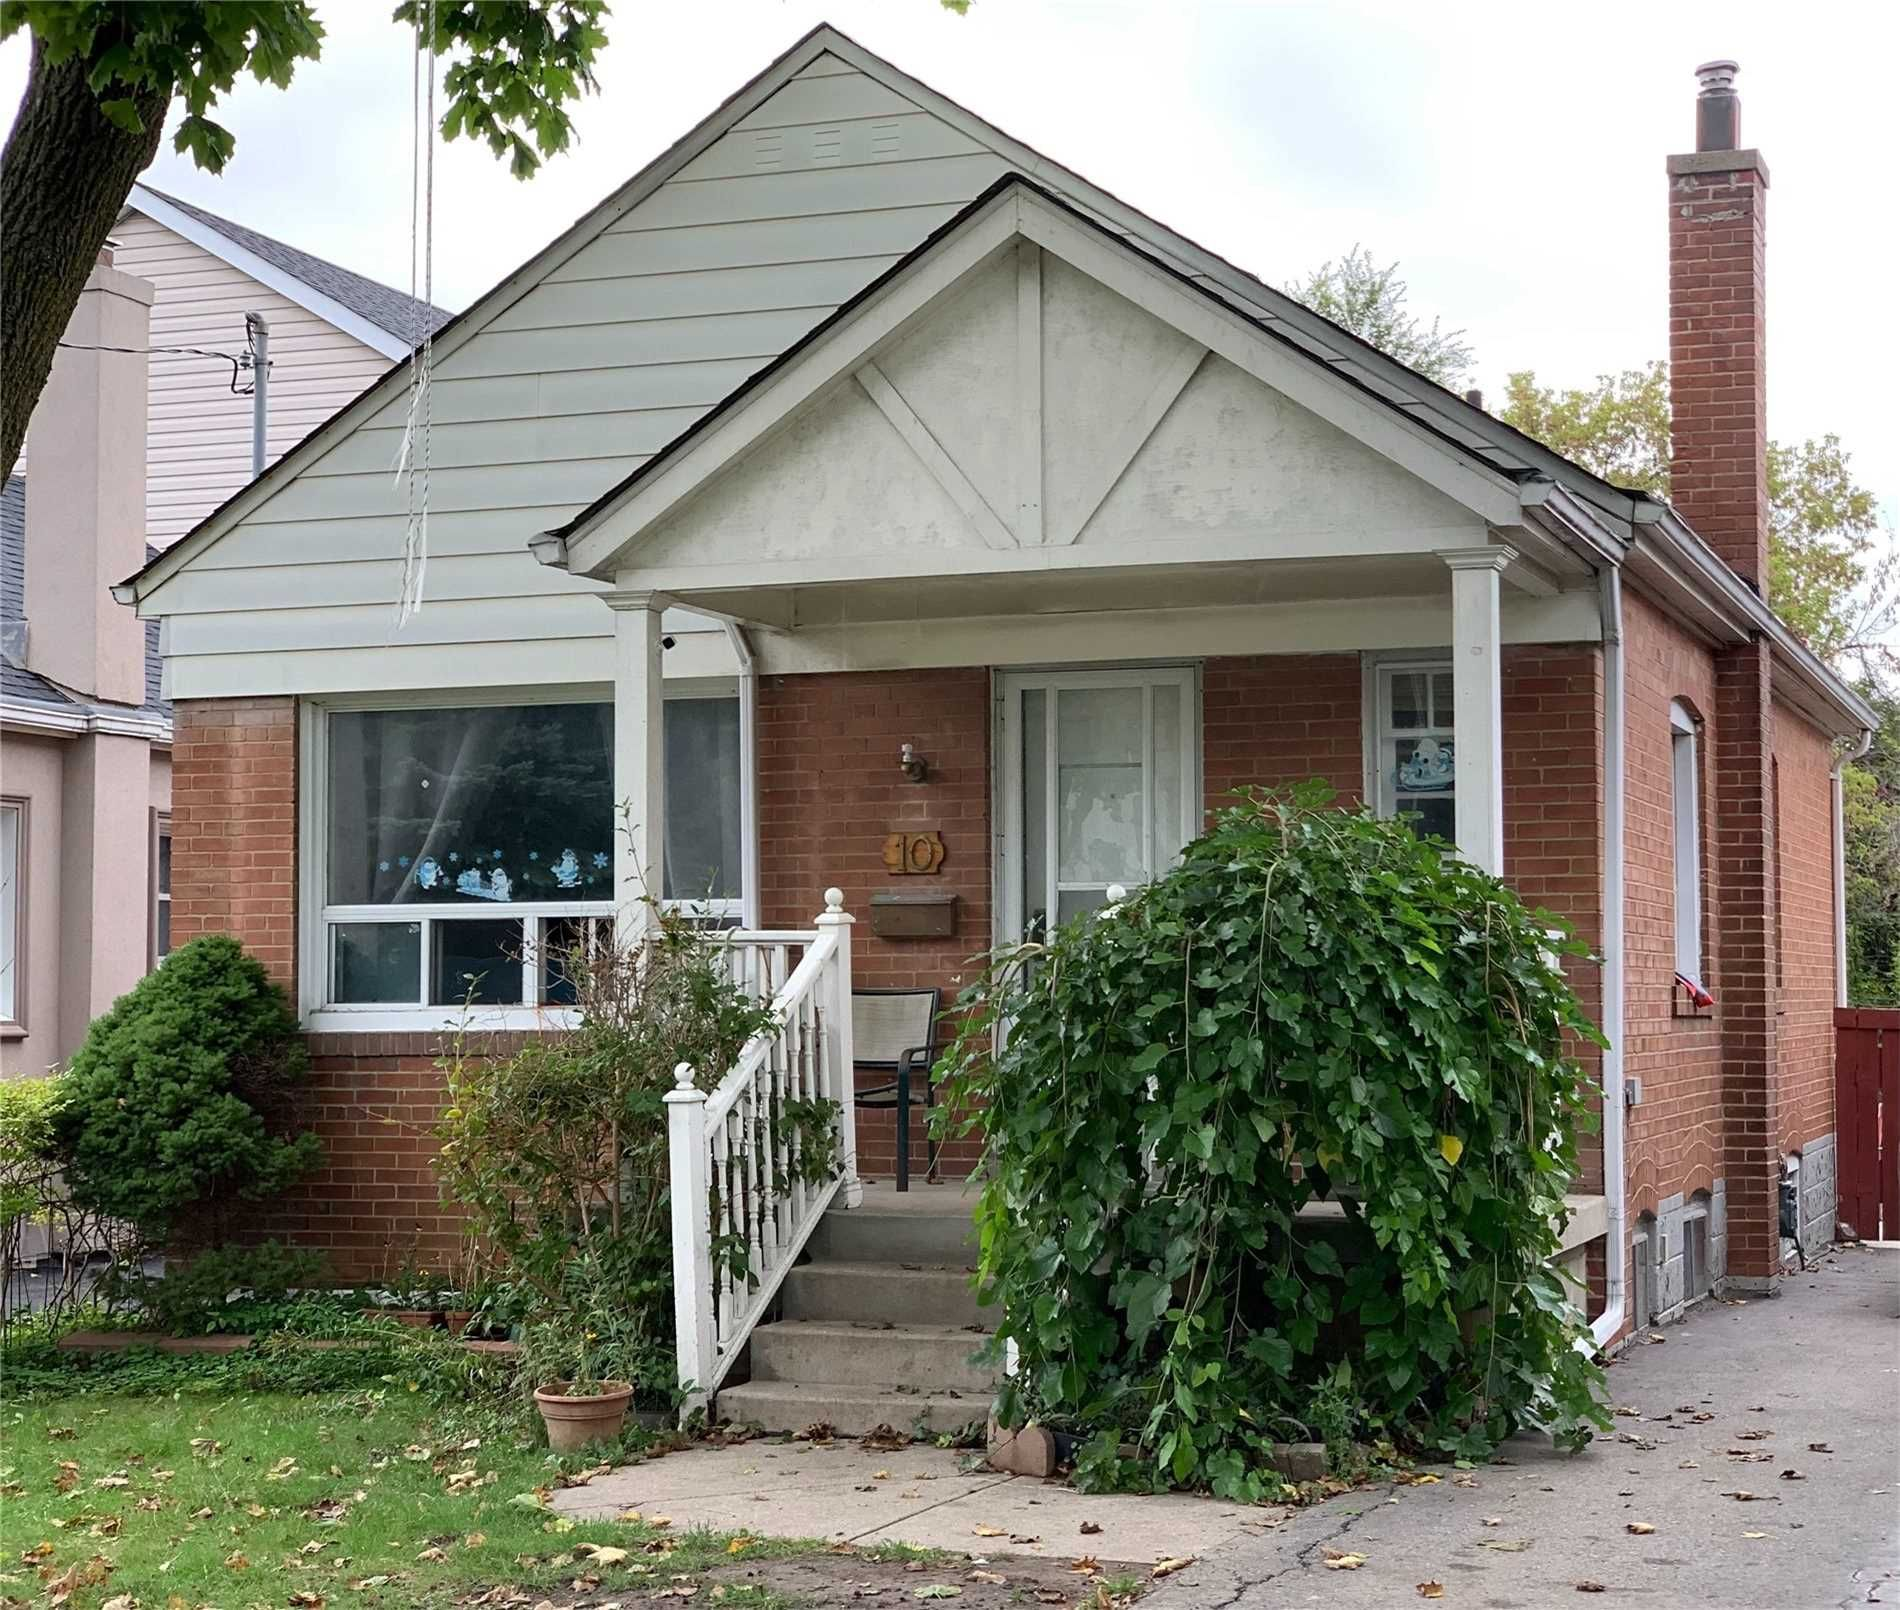 Main Photo: 10 Kentroyal Drive in Toronto: Humber Heights House (Bungalow) for sale (Toronto W09)  : MLS®# W5401227